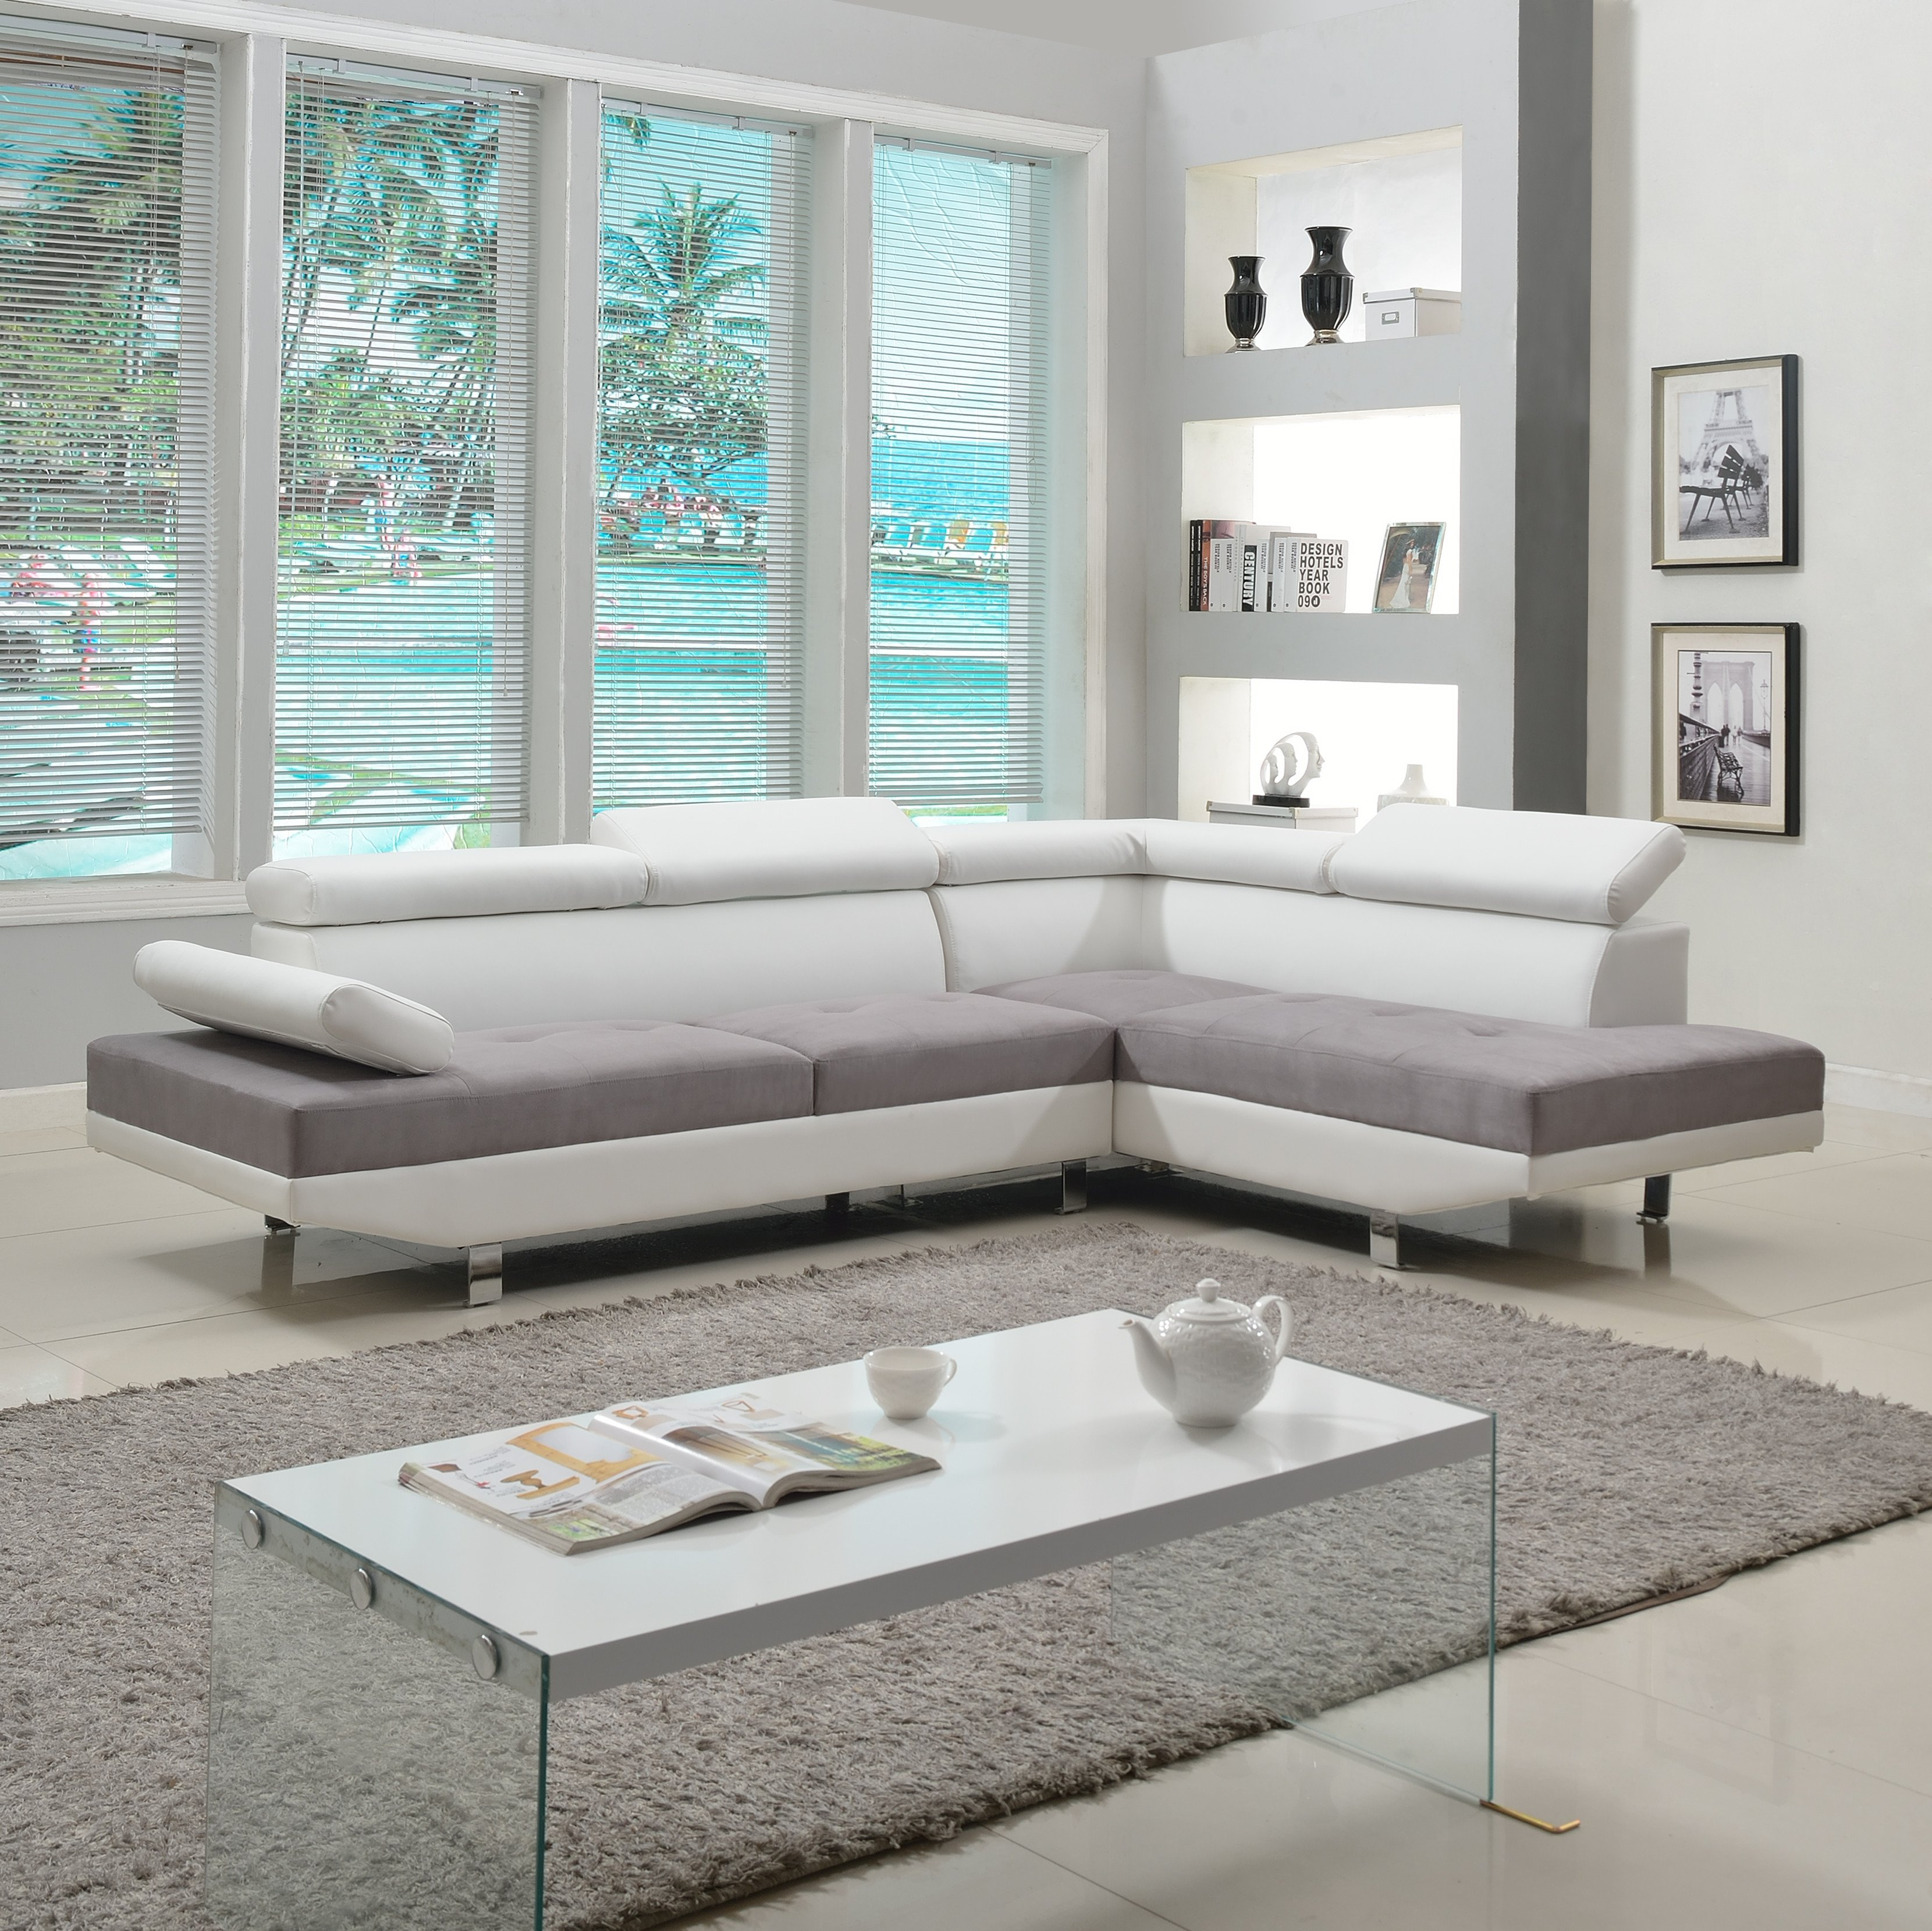 Contemporary Living Room sofas Awesome 2 Piece Modern Contemporary White Faux Leather Sectional sofa Living Room Set